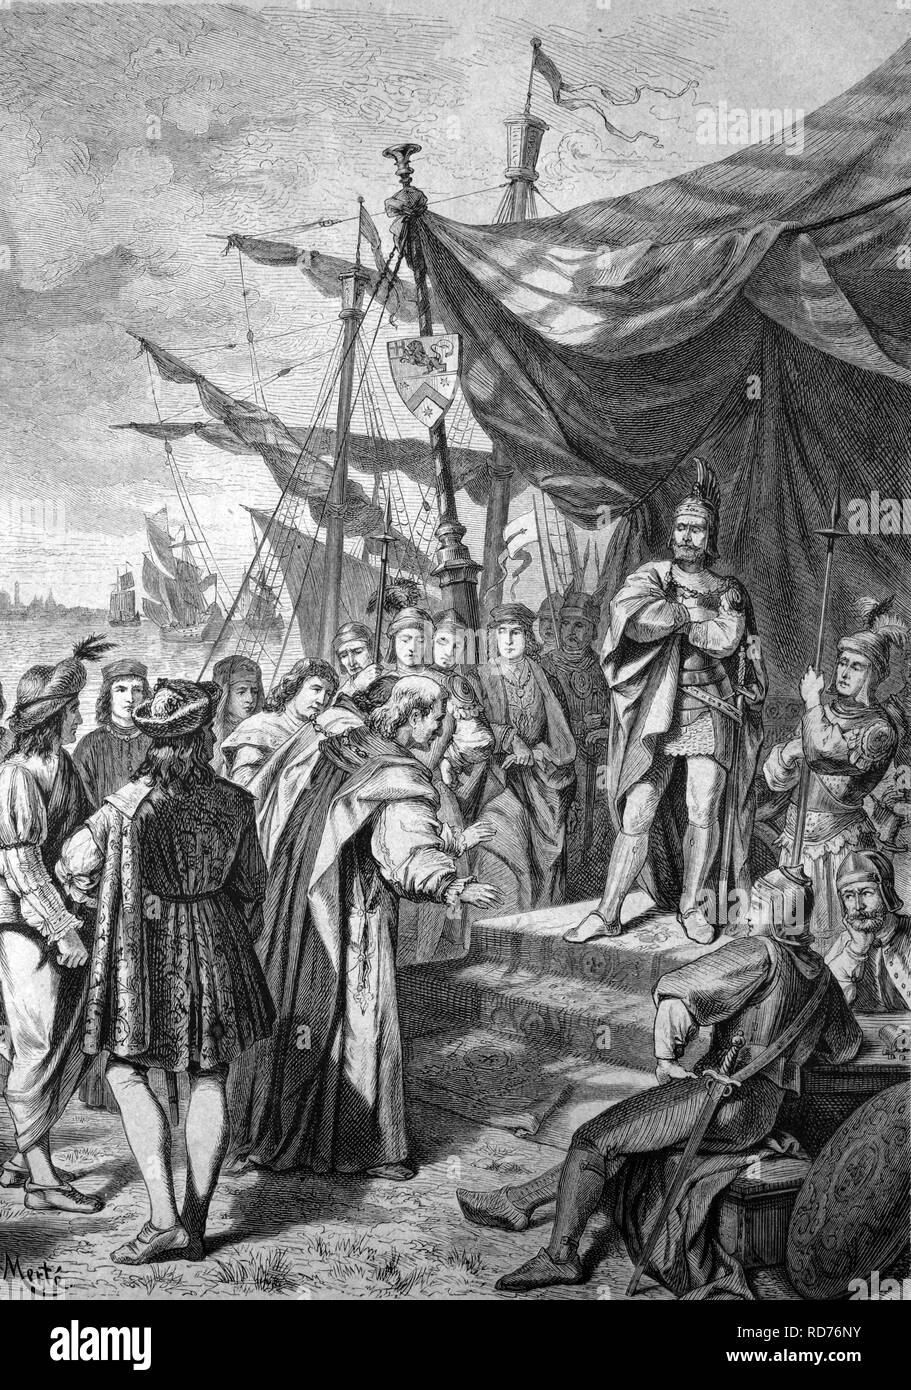 Pietro Doria rejecting the pleading of the Venetian ambassador for peace following the siege of Venice, historical illustration - Stock Image